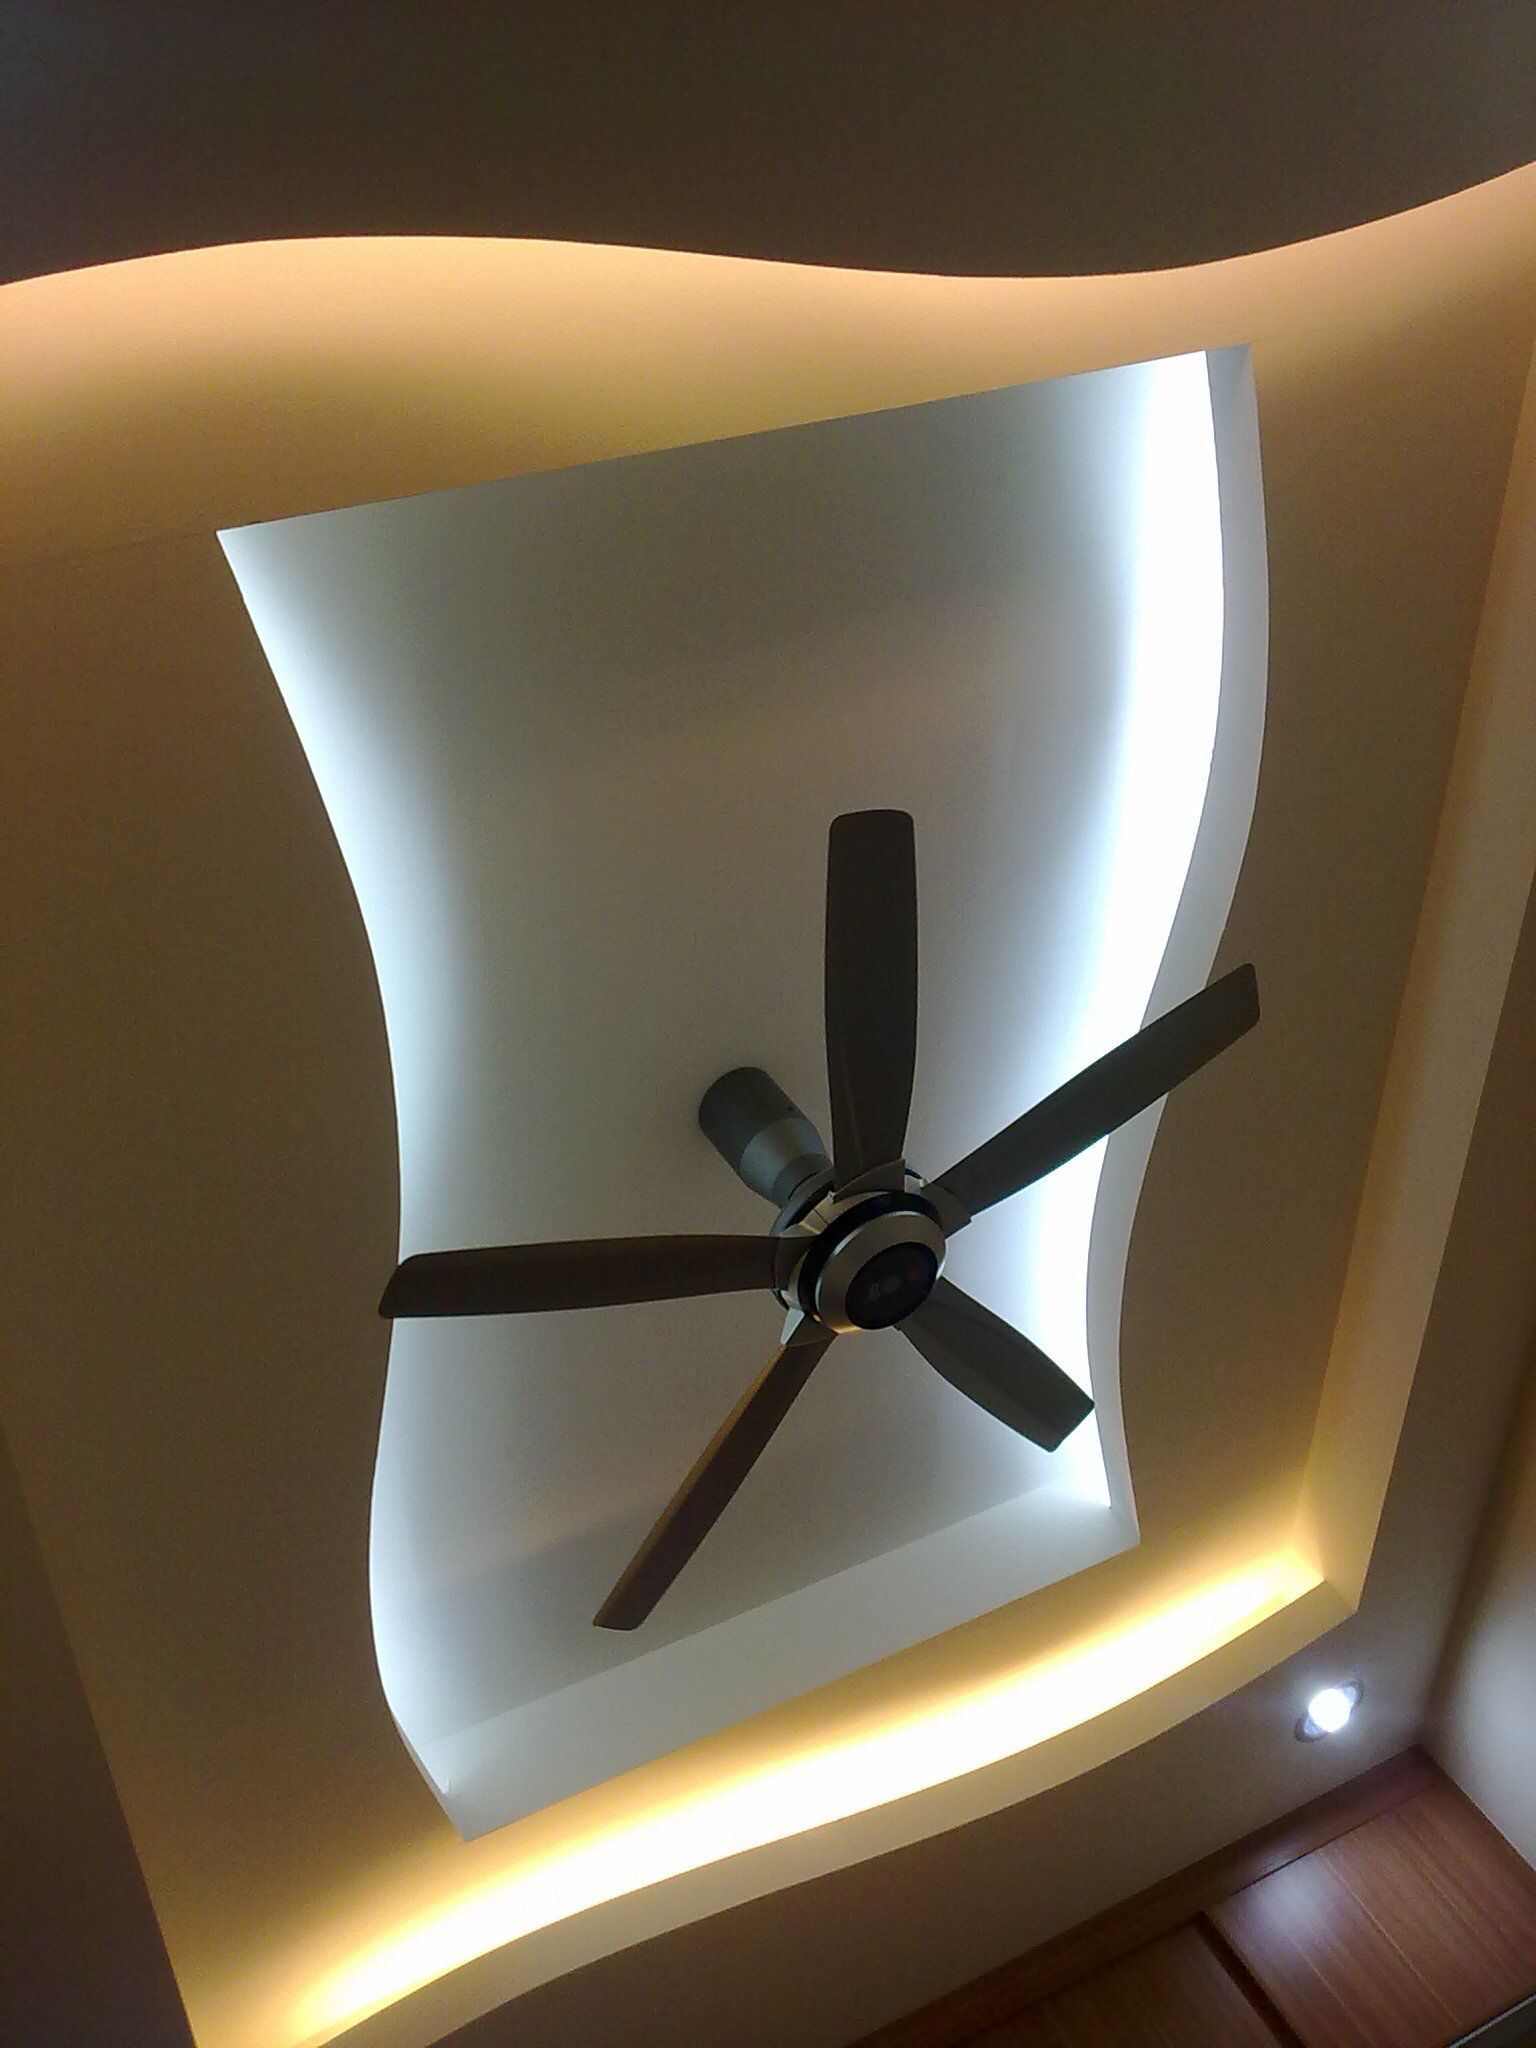 Sweet Home 3D Controsoffitto home architec ideas: basic easy simple ceiling design